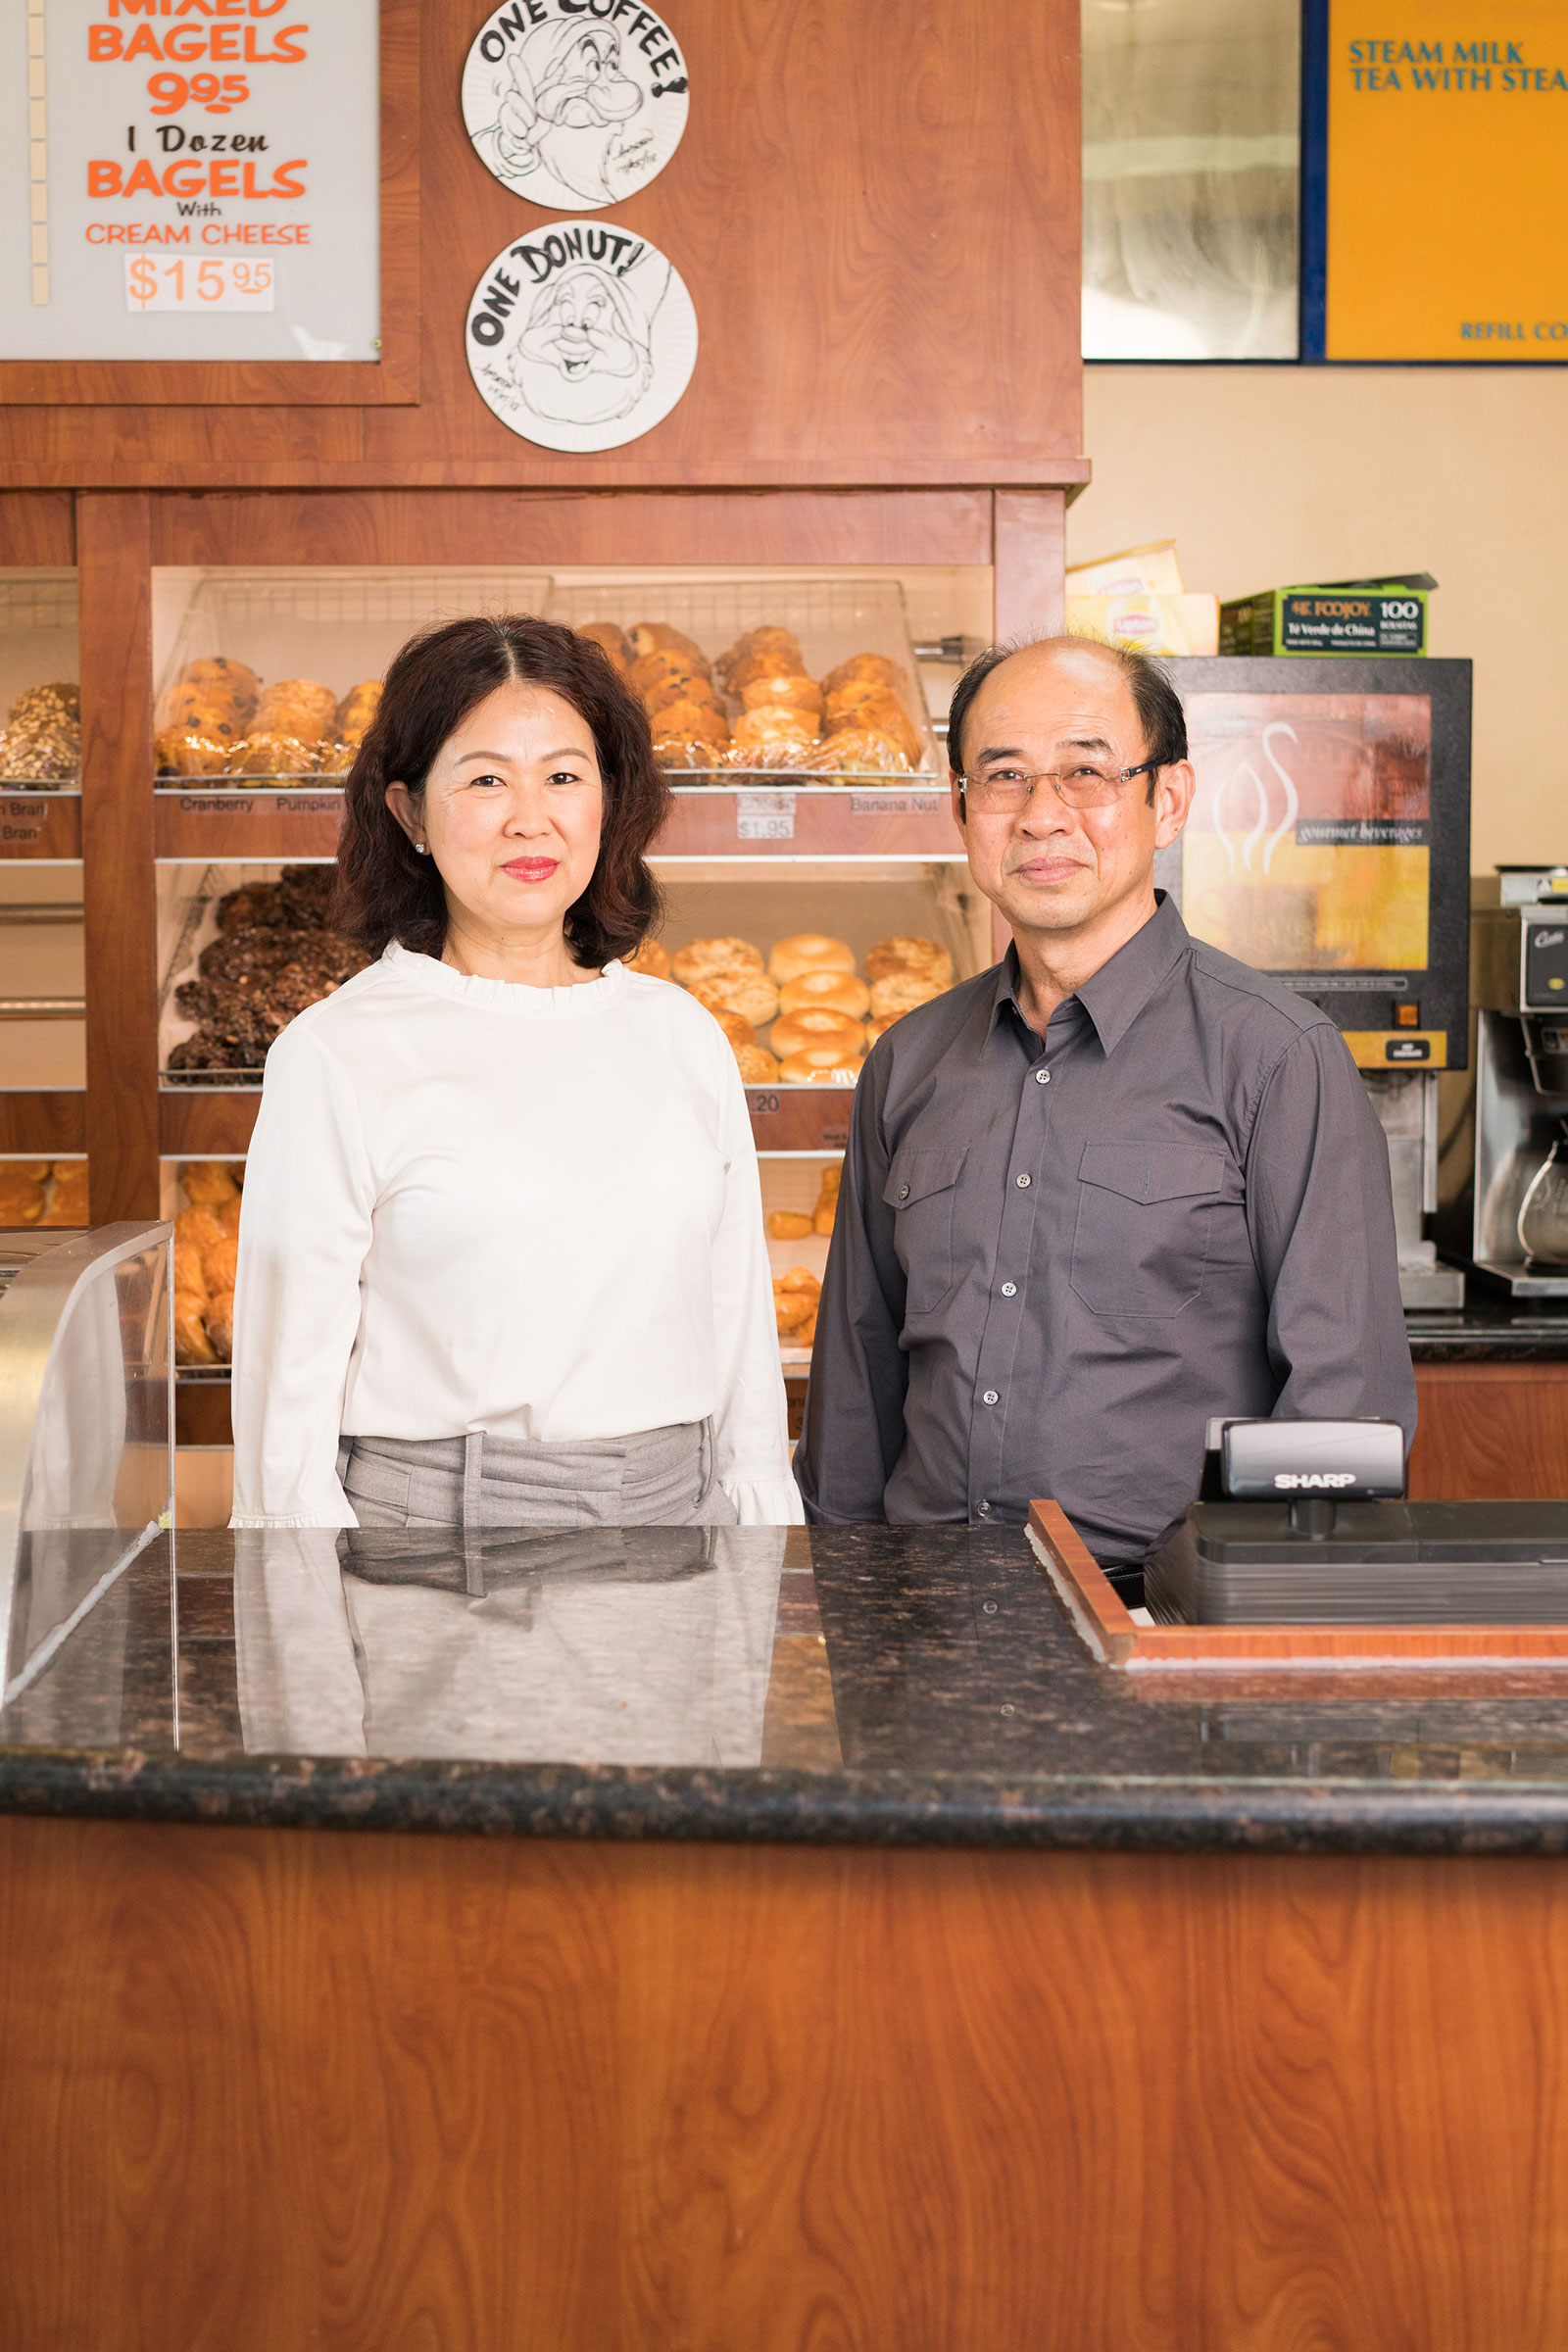 Jenny and Bruce Bu, of Dad's Donuts & Bakery, in Burbank, Calif. The couple has owned their shop for decades after fleeing Cambodia during the era of the Khmer Rouge.